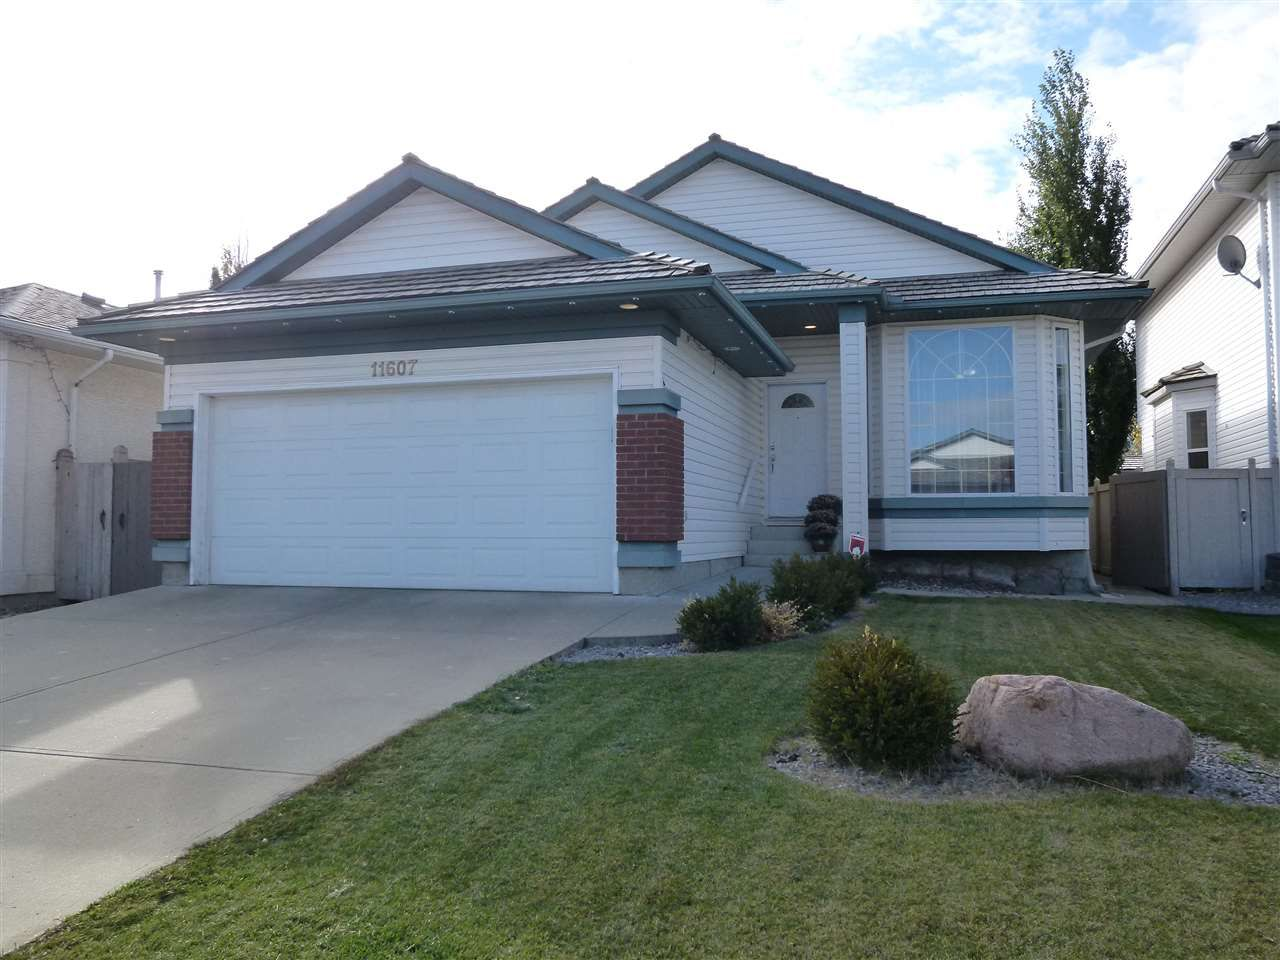 Main Photo: 11607 10 Avenue in Edmonton: Zone 16 House for sale : MLS®# E4131659